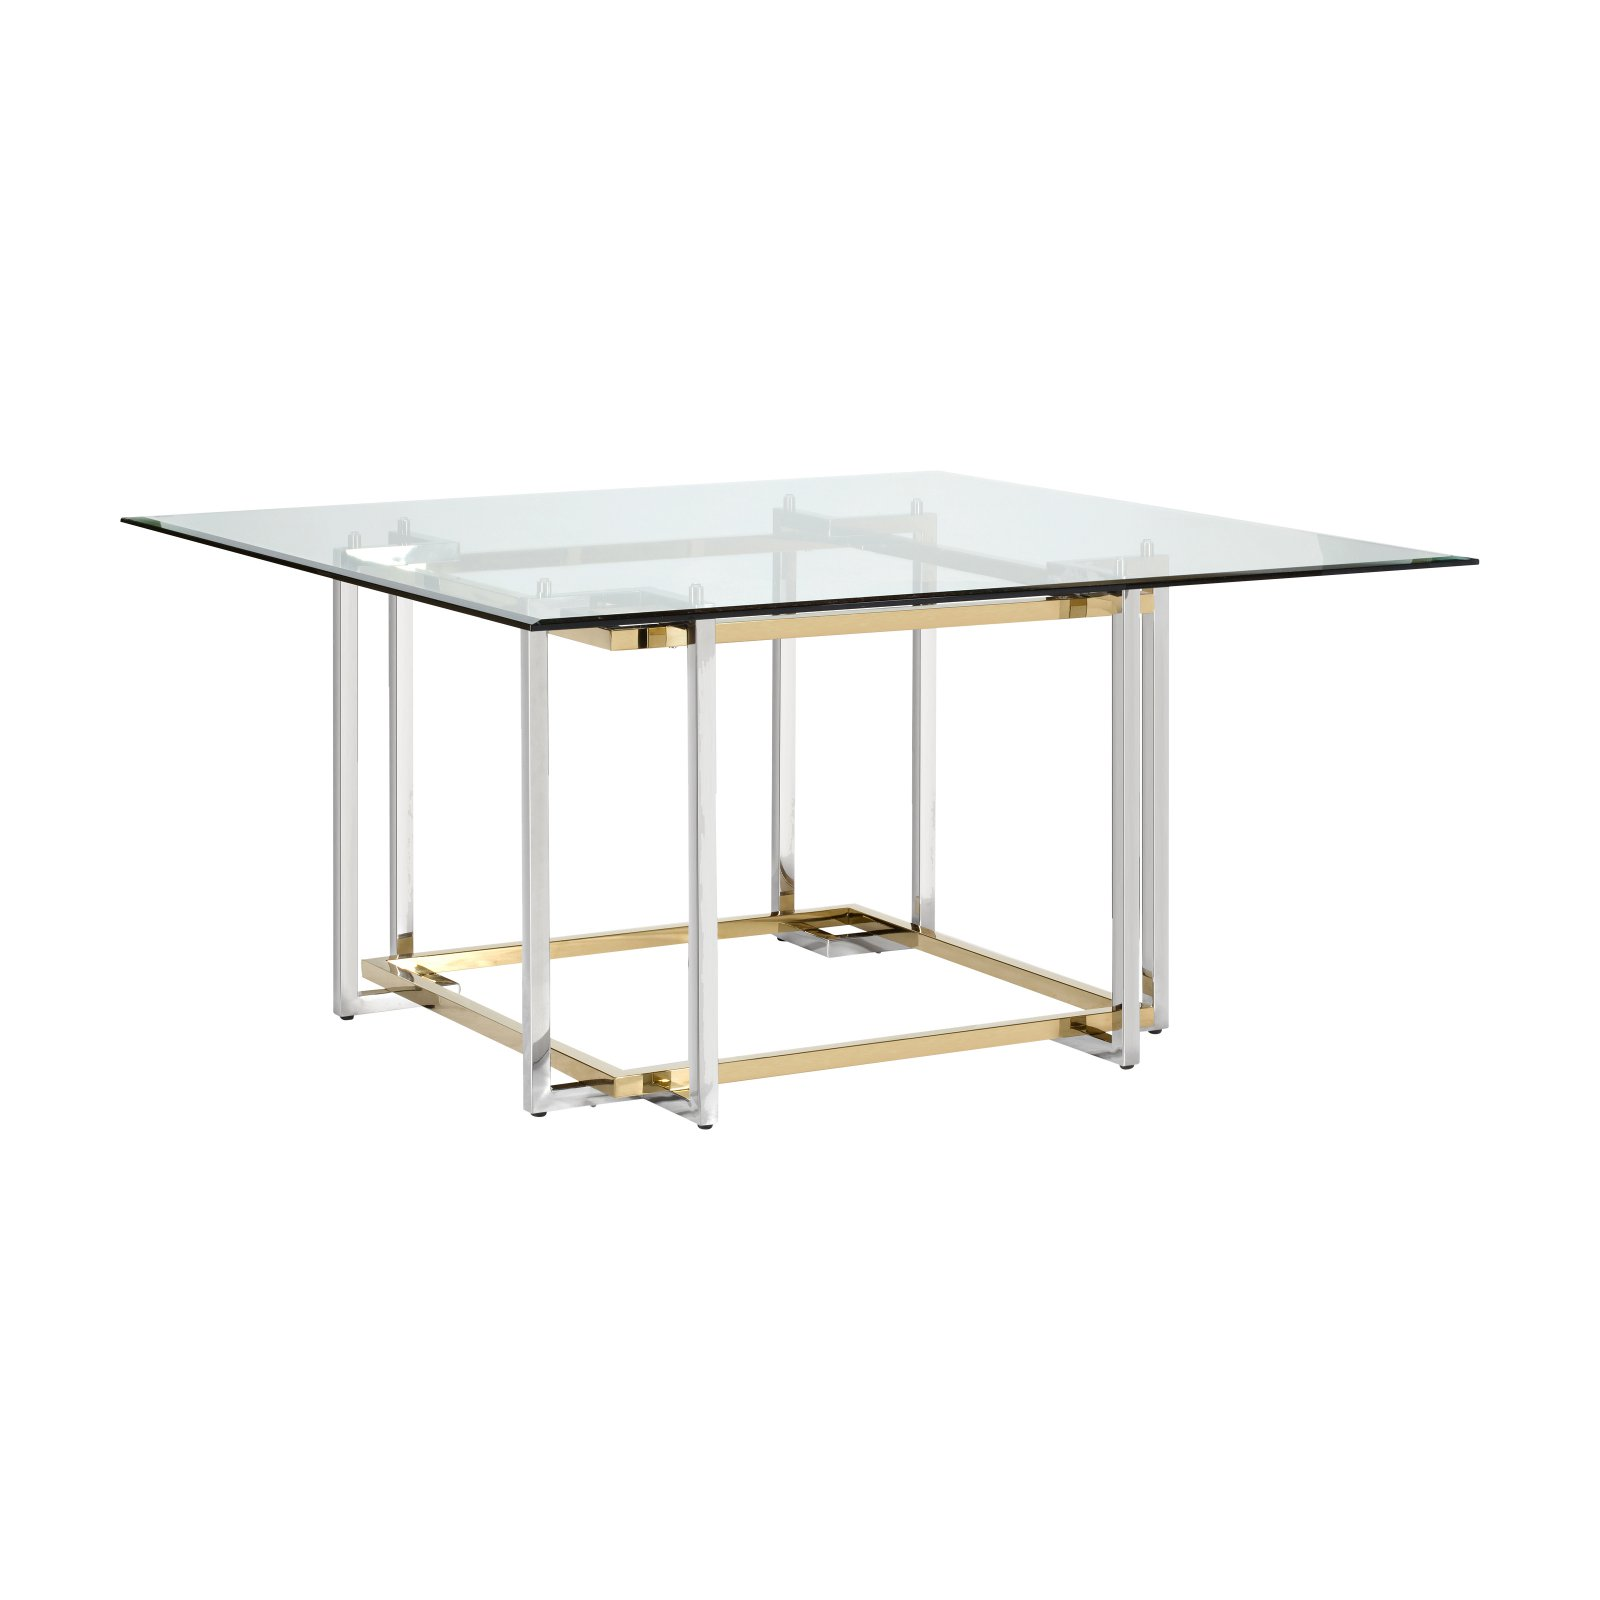 Lievo Elin Glass Square Dining Table Square Dining Tables Table